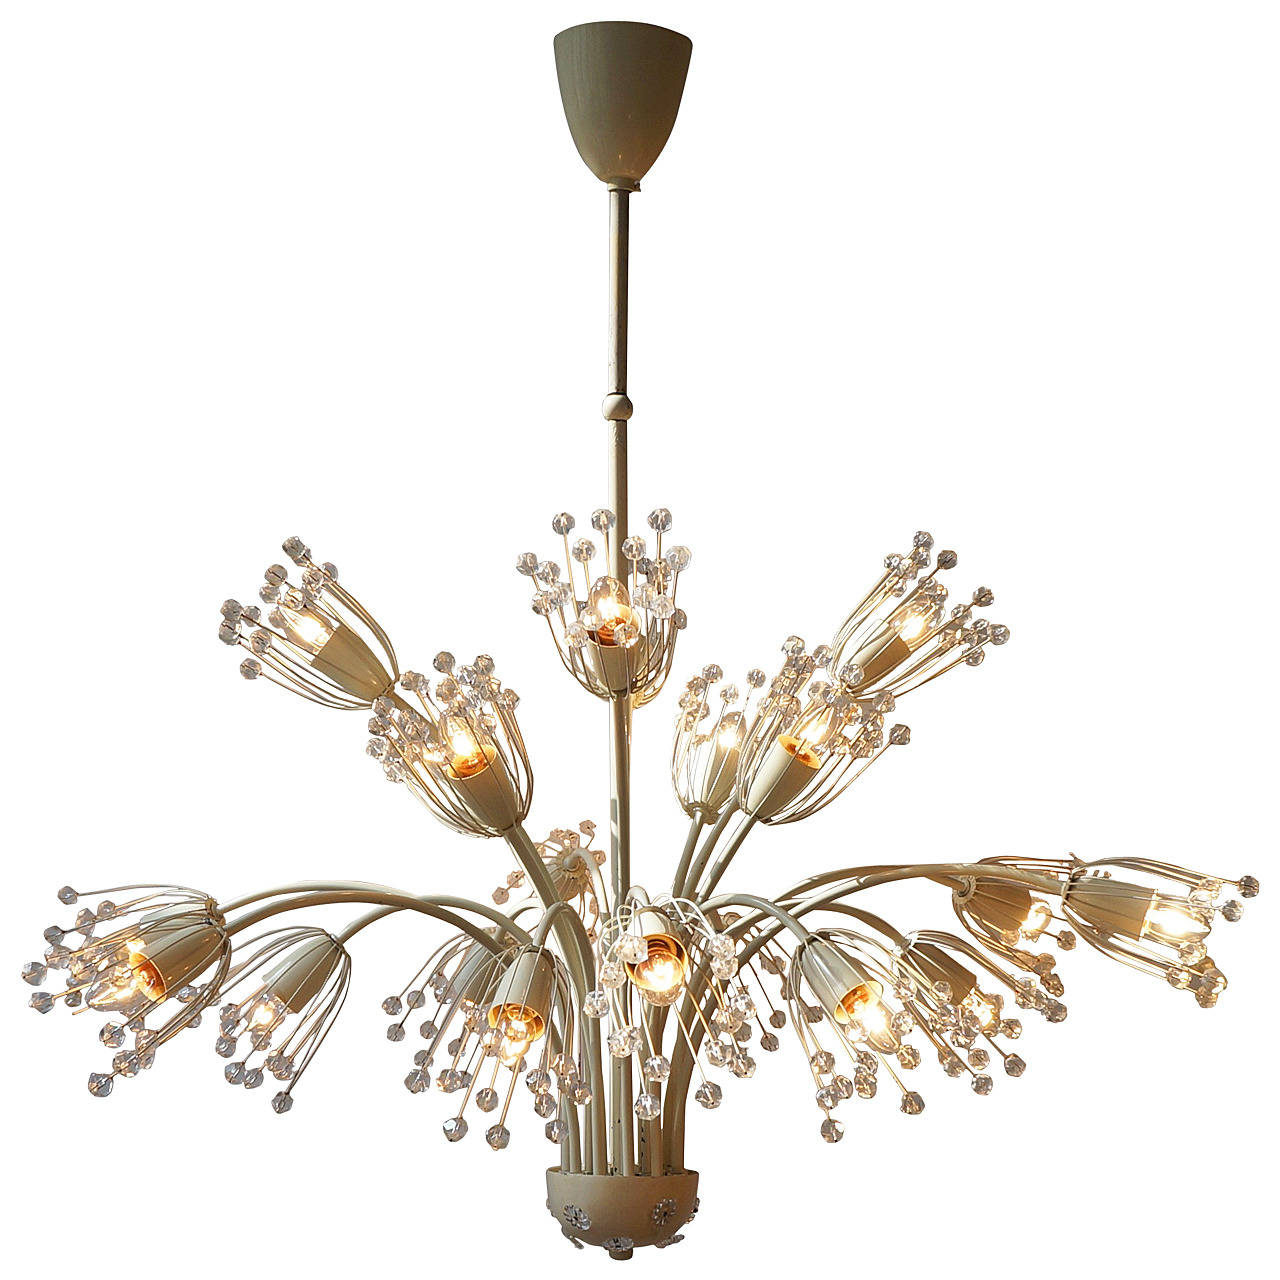 Lamp chandelier wonderful cellula chandelier for luxury home cellula chandelier used chandeliers for sale cheap cellula chandelier arubaitofo Choice Image